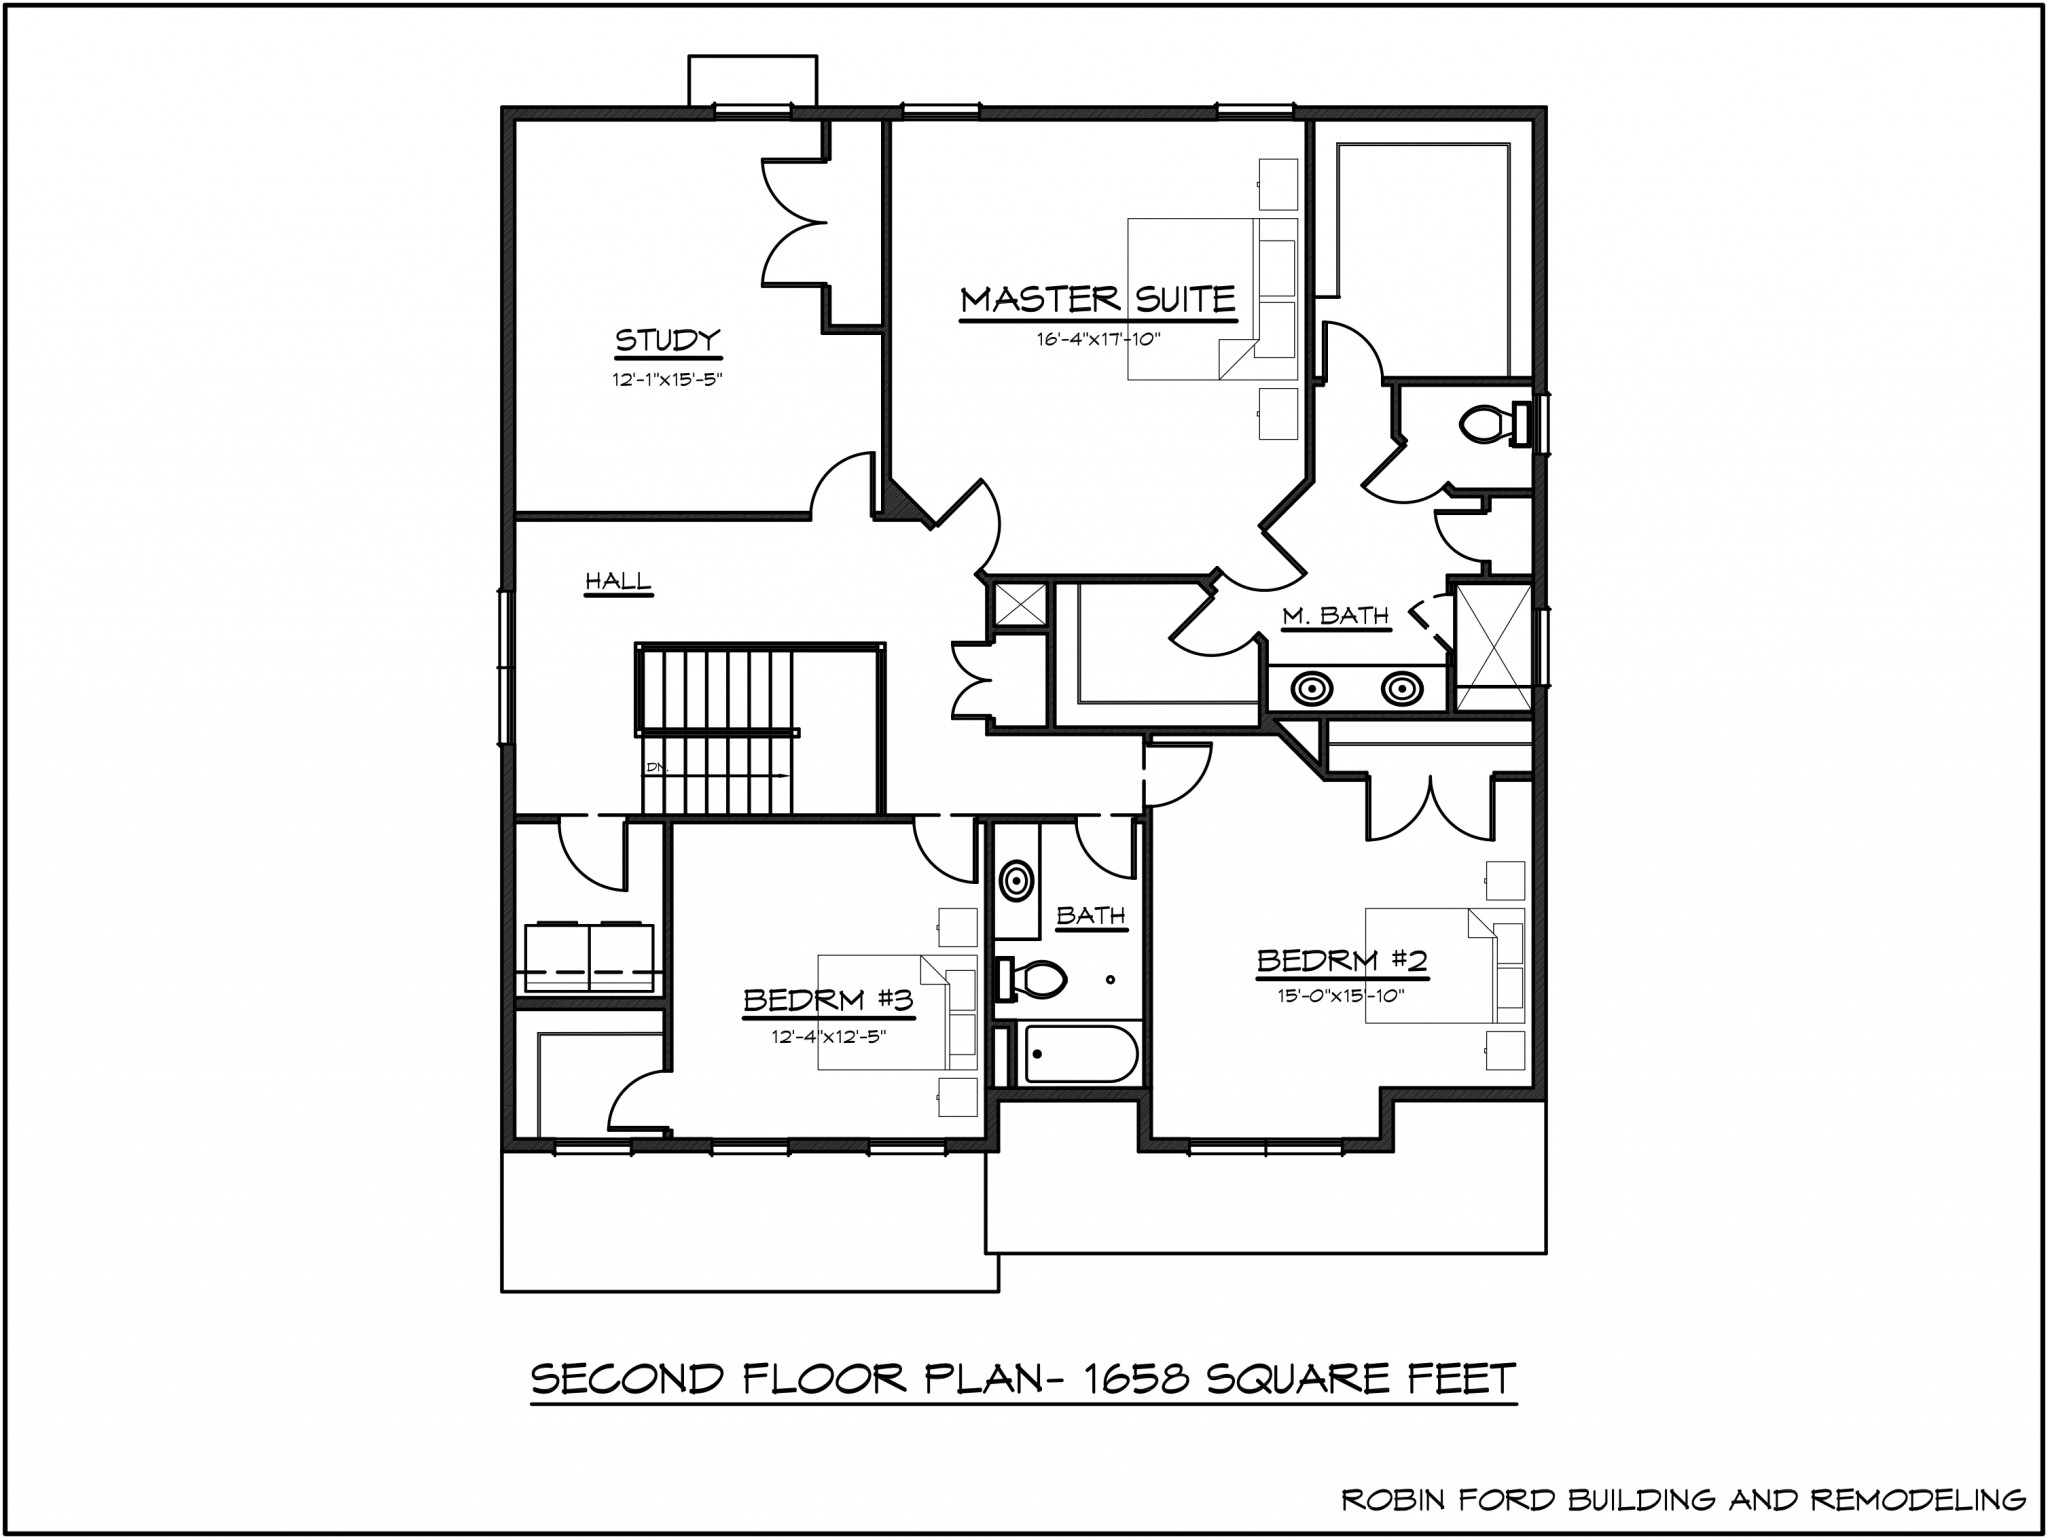 Robin Ford Building Remodeling Sample Floor Plans In Carroll 2 Story House Electrical Plan Oak Grove 2nd